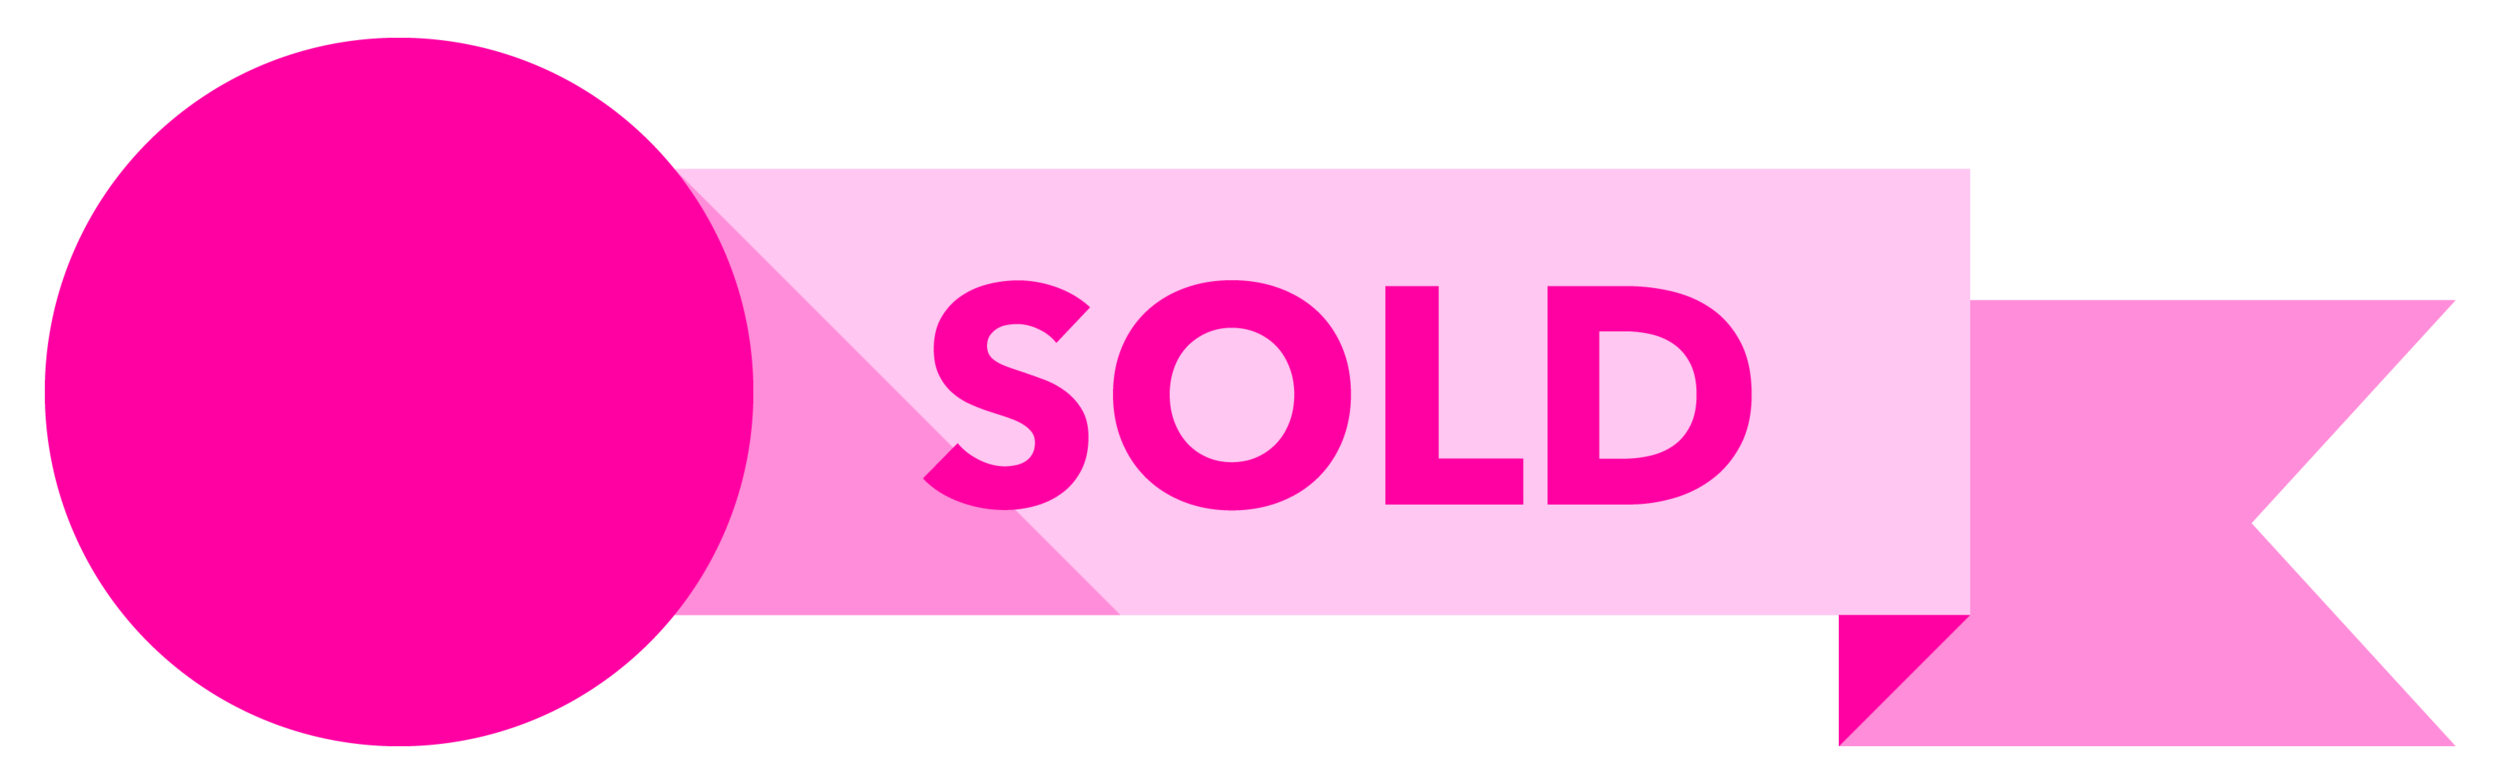 Sold Graphic-01.png